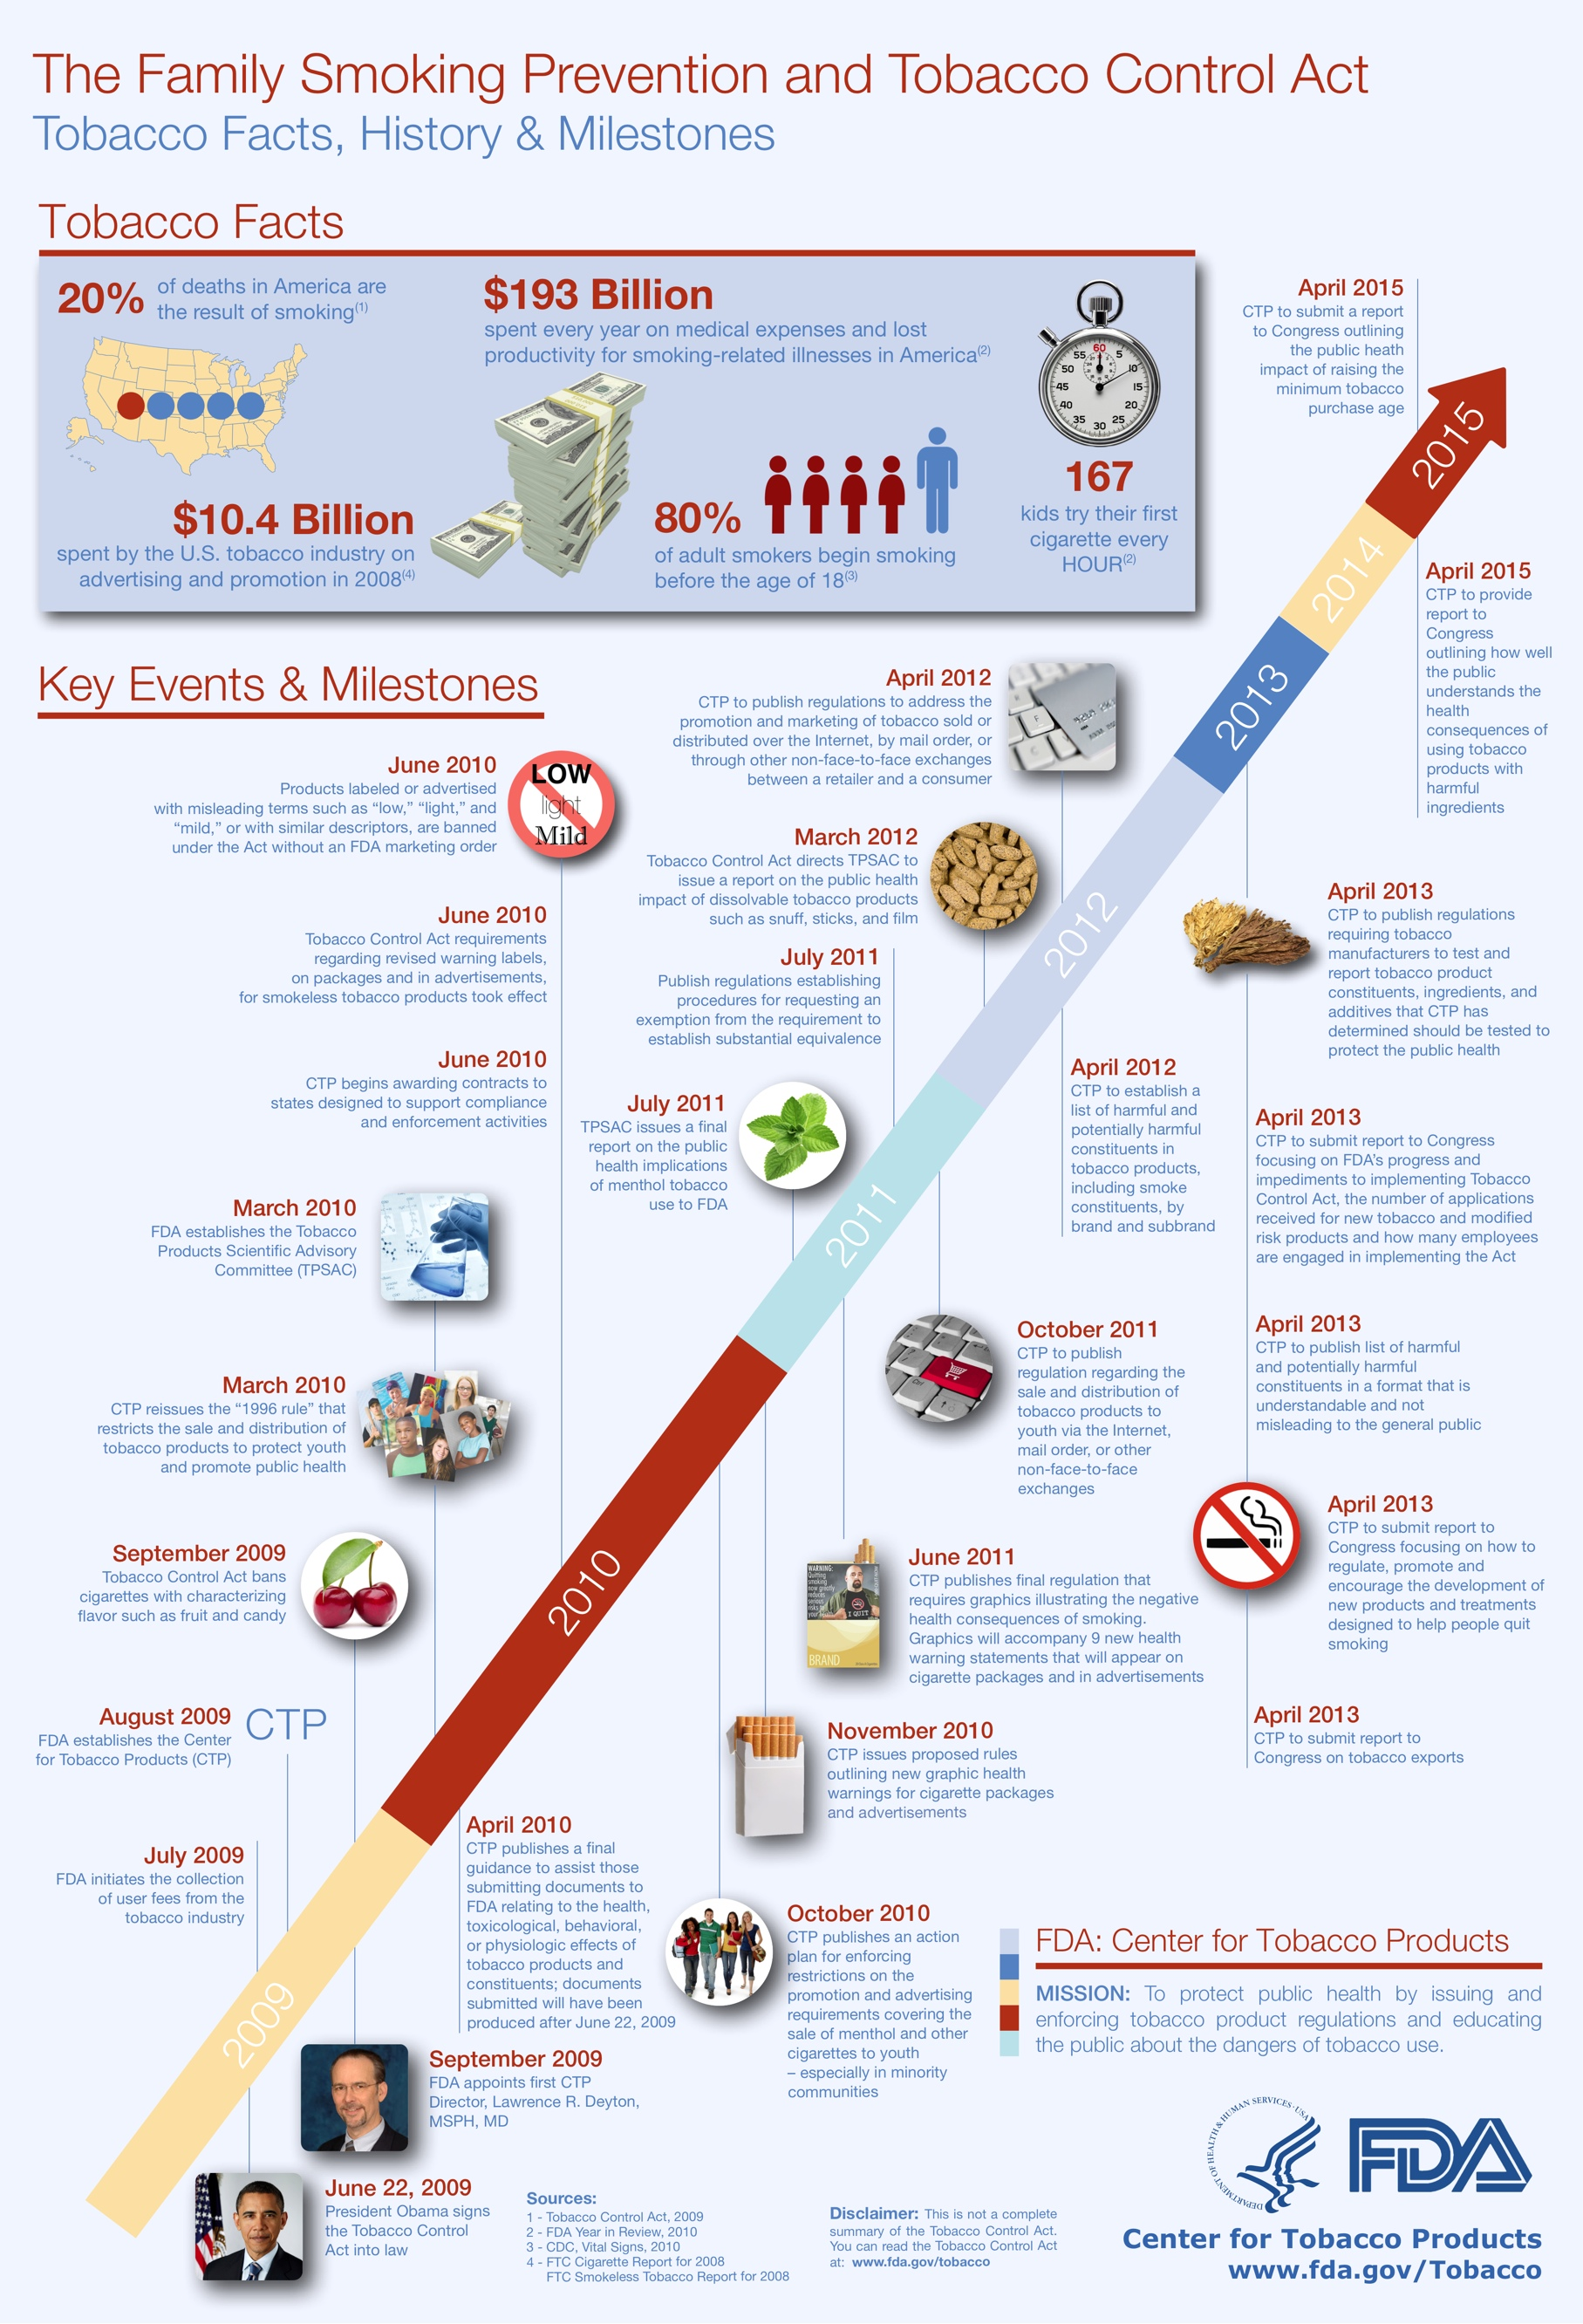 FDA The Tobacco Control Act timeline